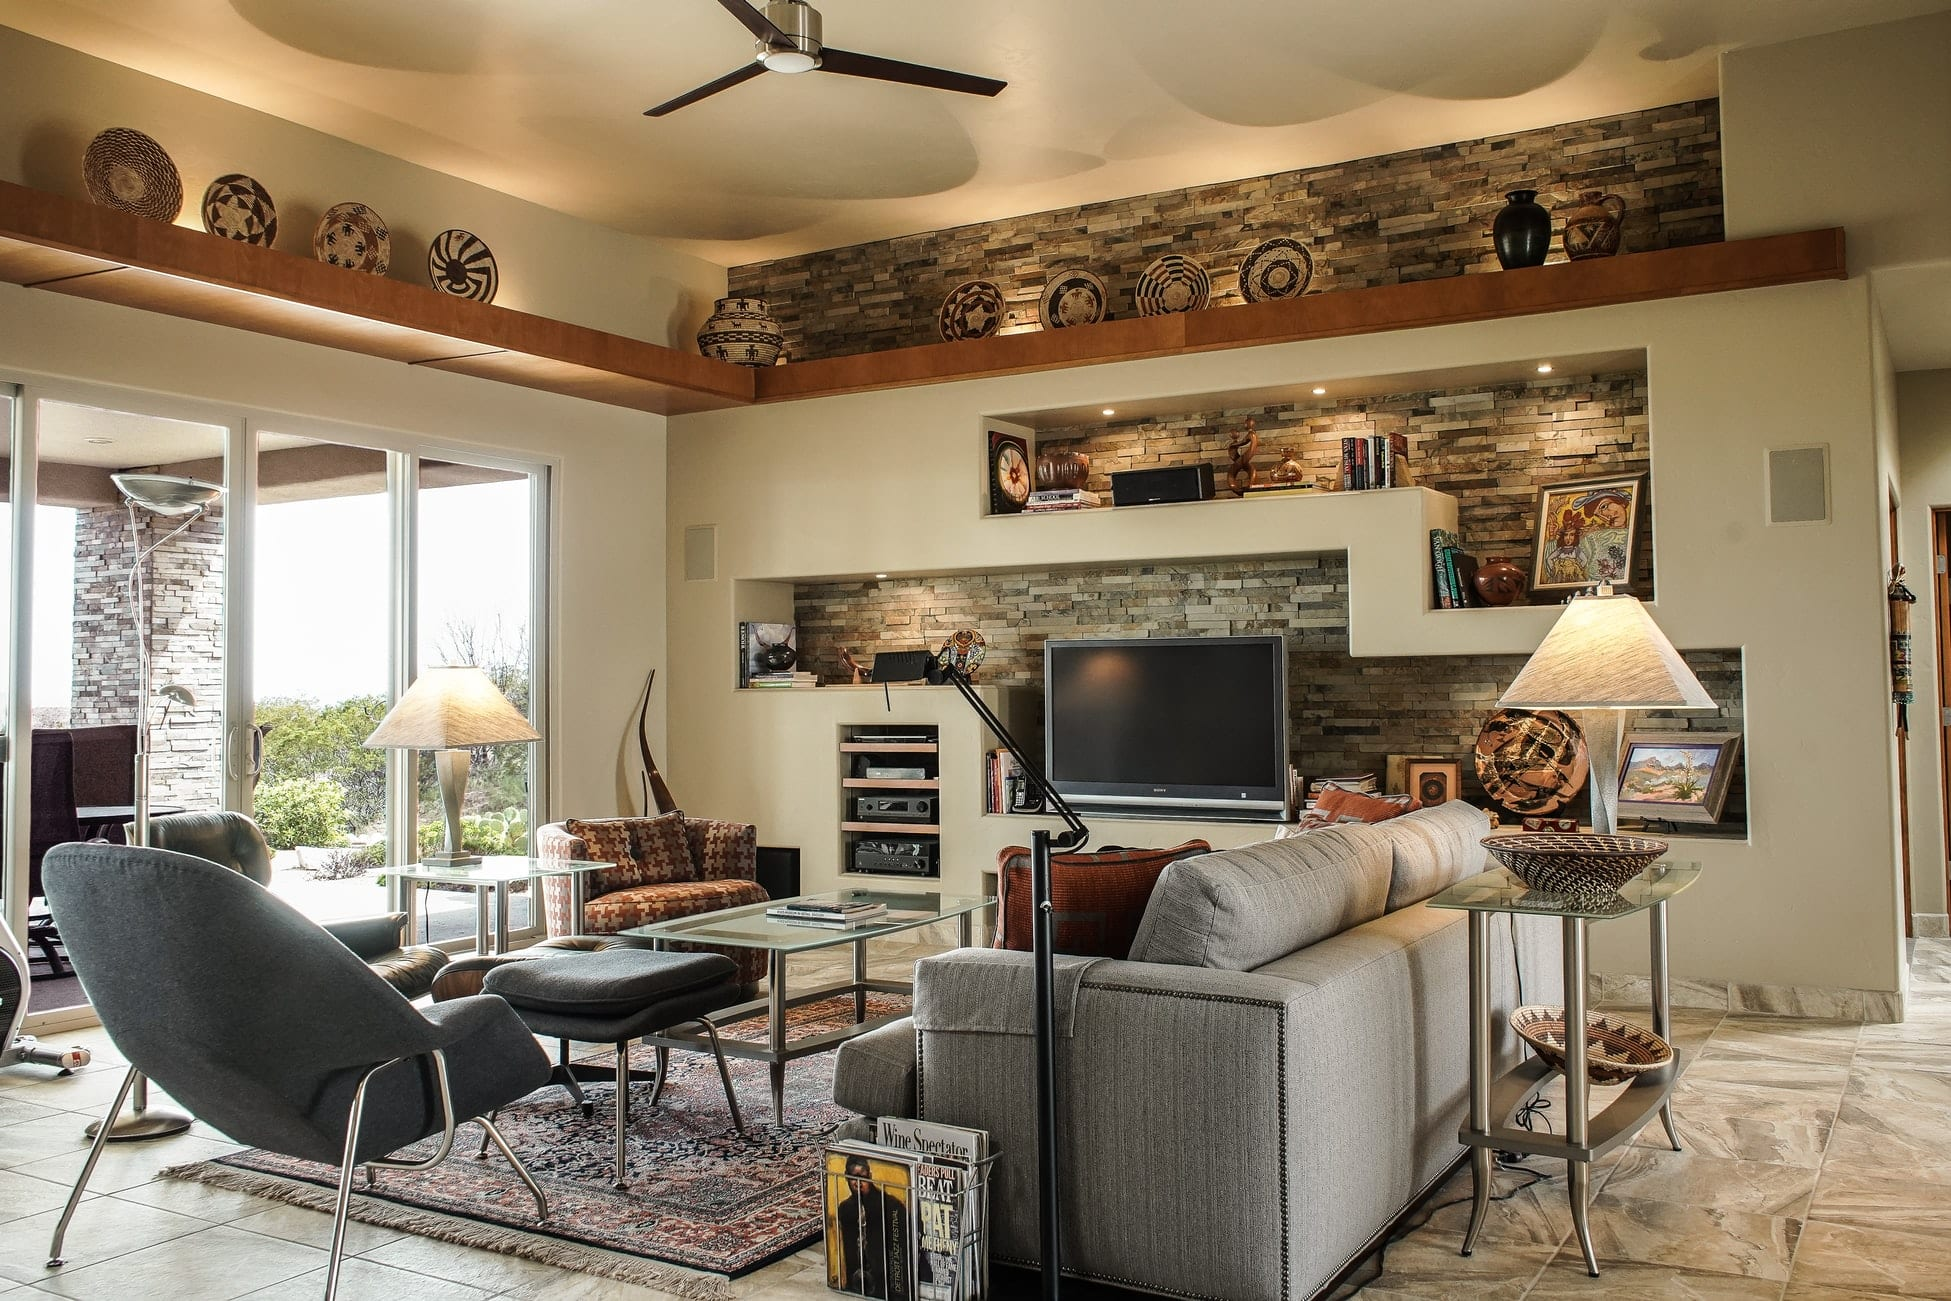 Natural Stone Adds A Touch Of Modern Home Decor To Any Room - Natural Stone in Lincoln and Omaha, Nebraska